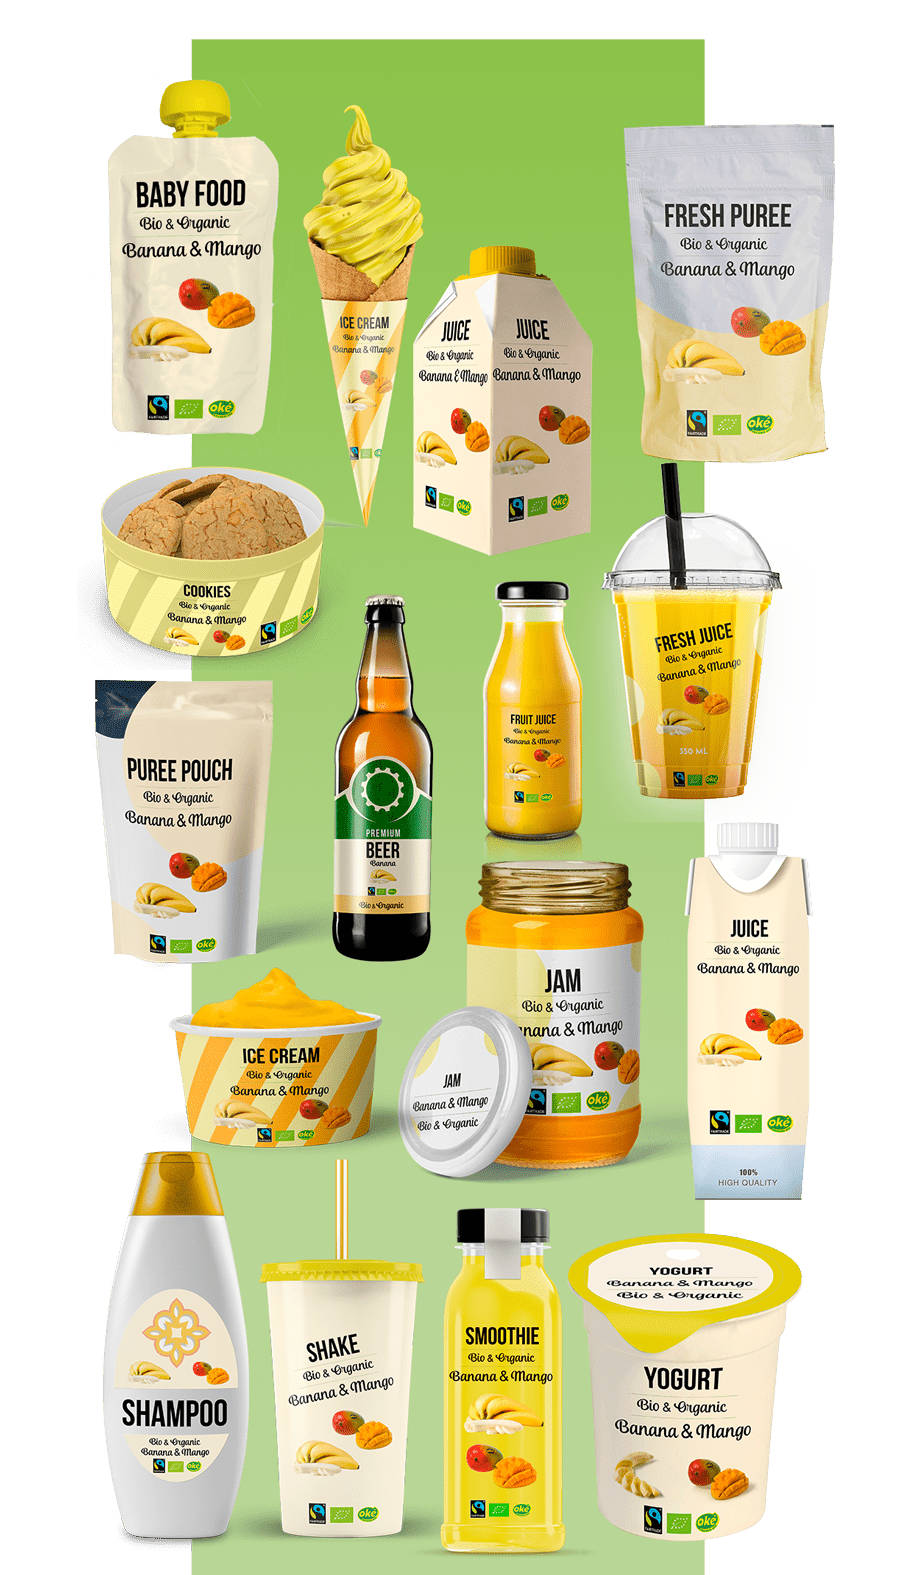 AgroFair-Bio-Organic-Puree--Packaging-UK-min